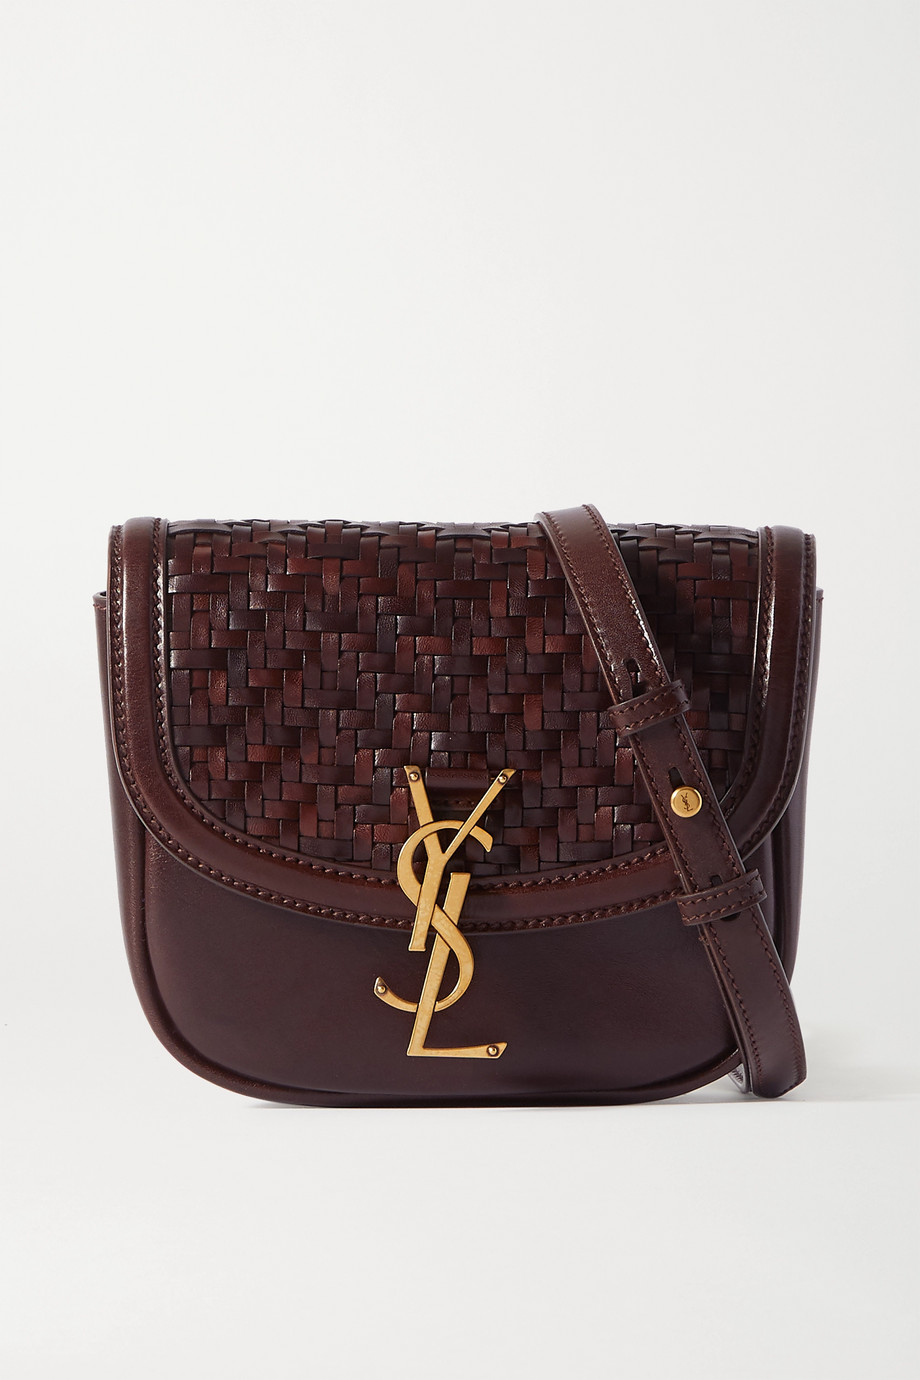 SAINT LAURENT Kaia small woven leather shoulder bag